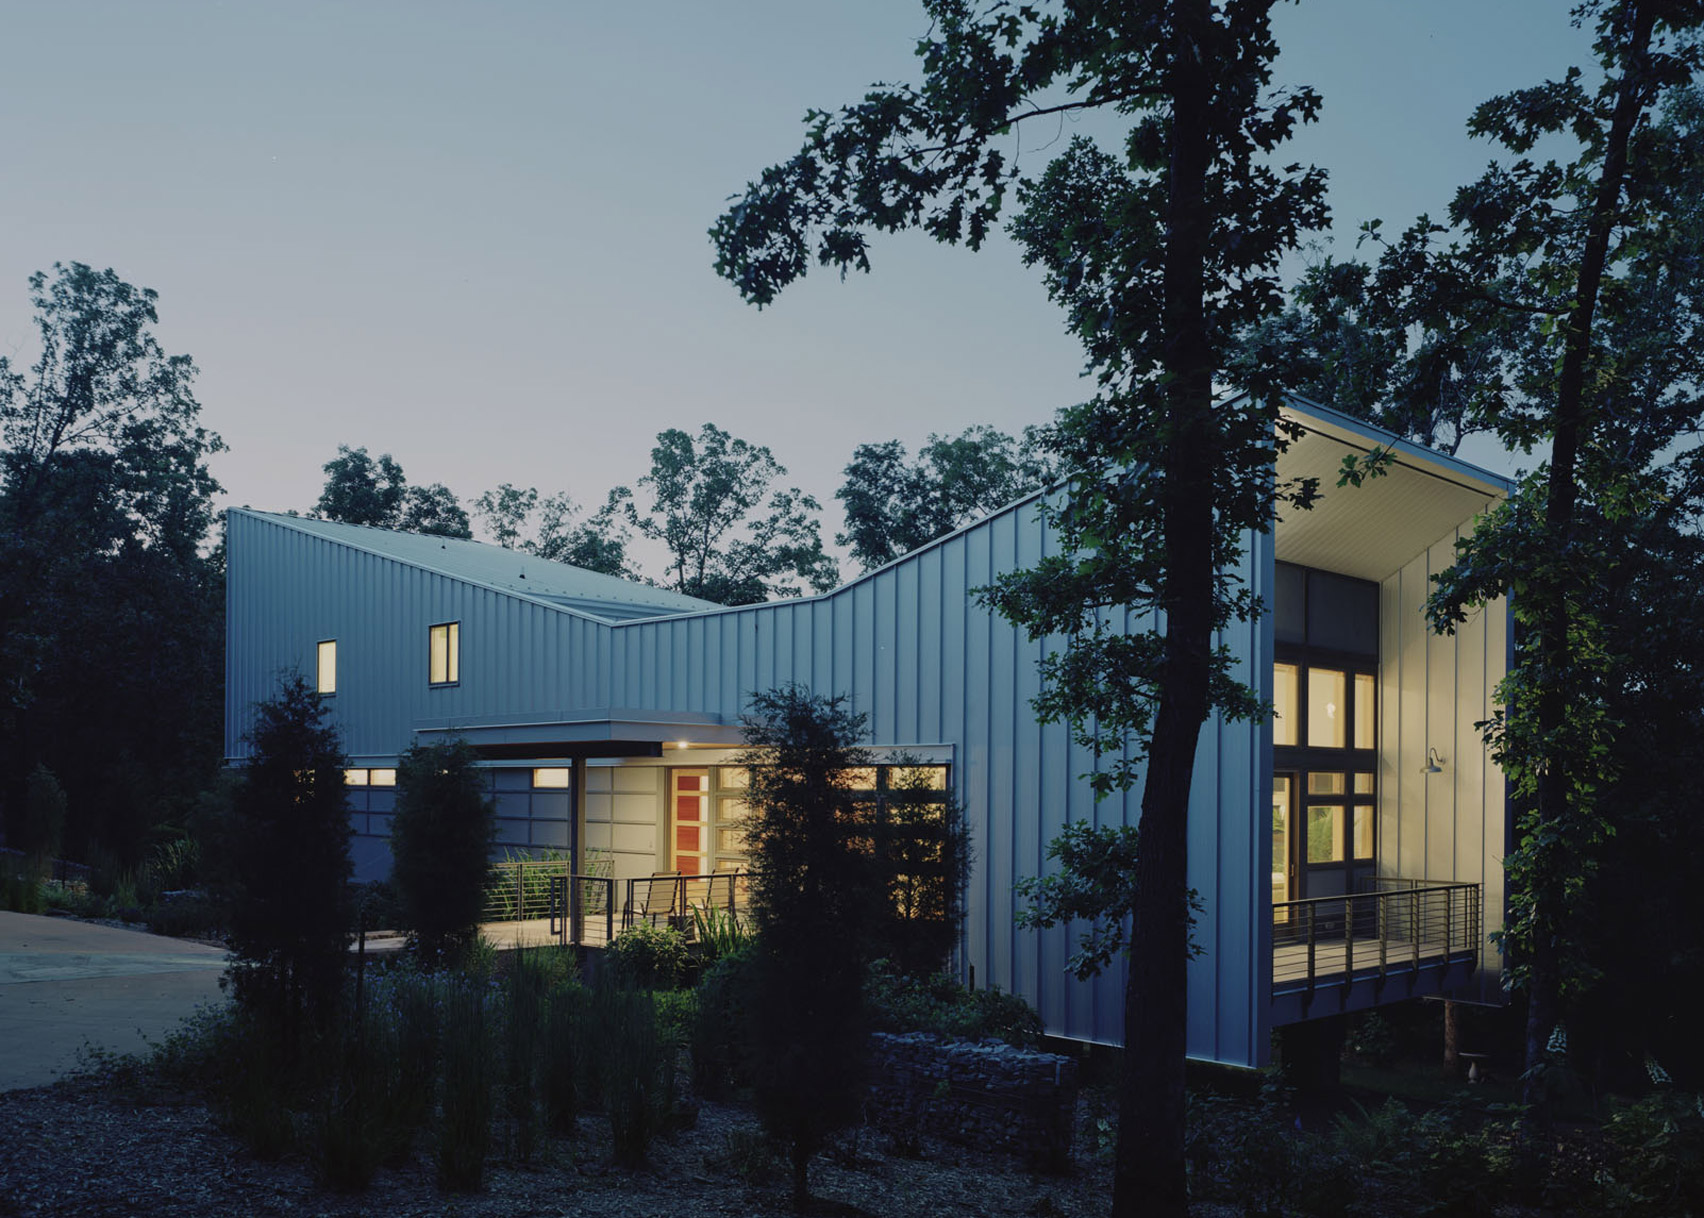 Bowtie House by deMx Architecture has an angular metal roof